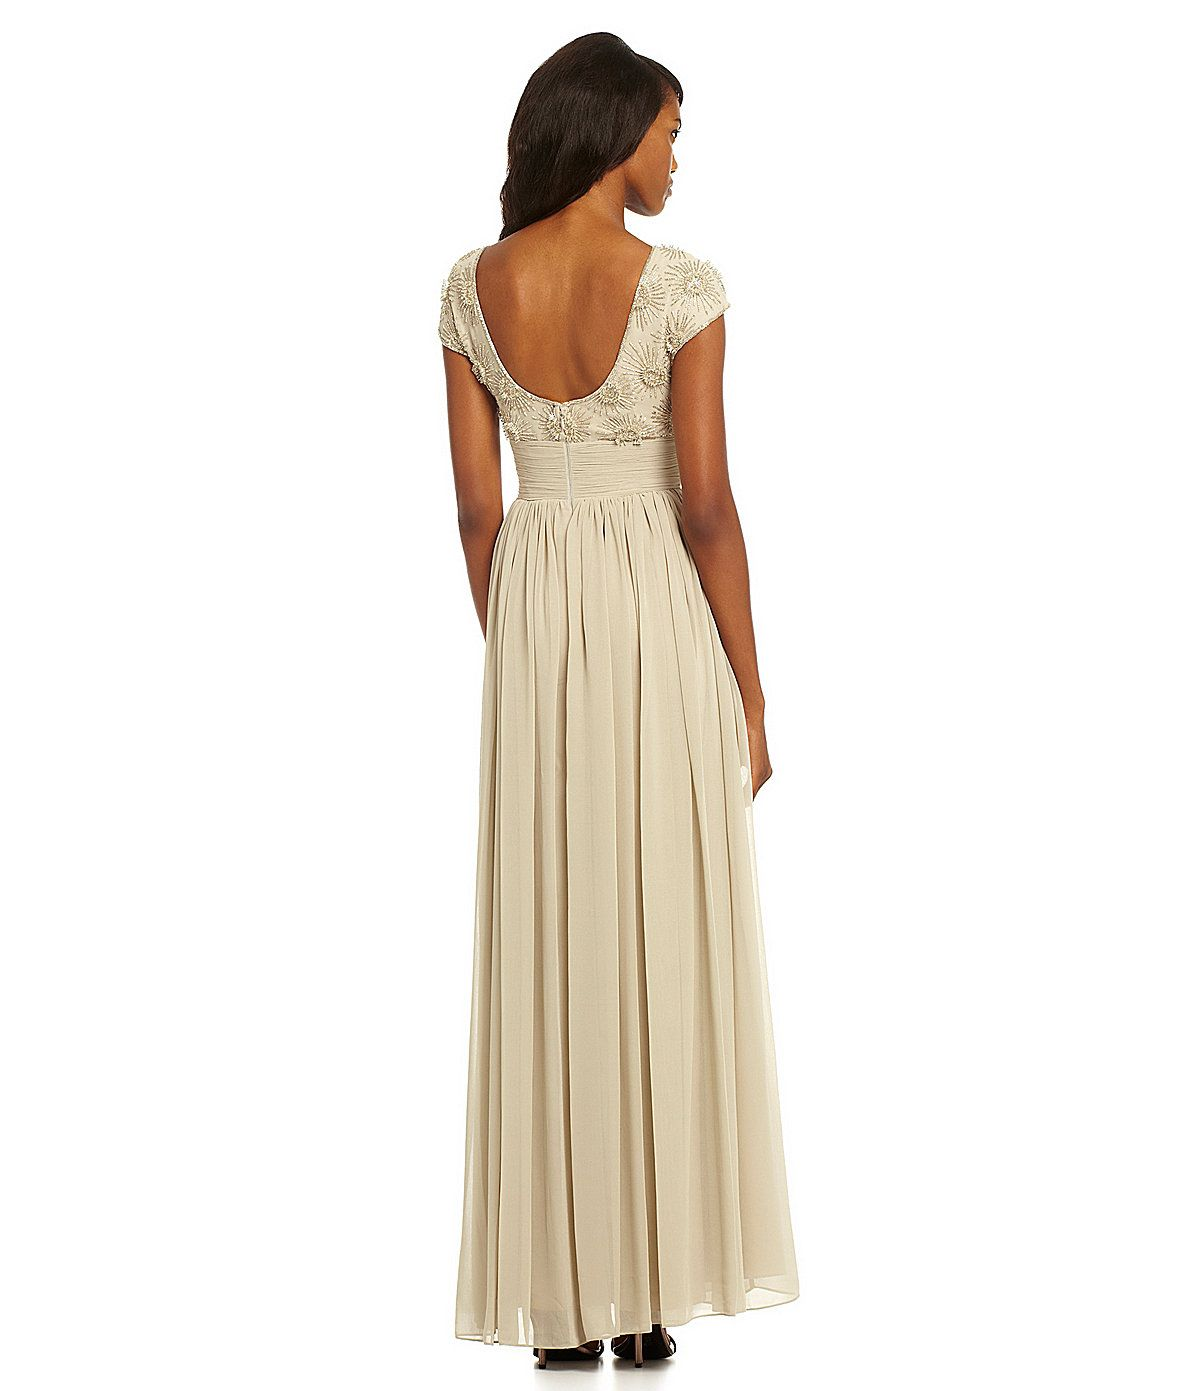 White and Gold Wedding. Bridesmaid Dress.  JS Collections Floral Beaded Bodice Gown | Dillards.com